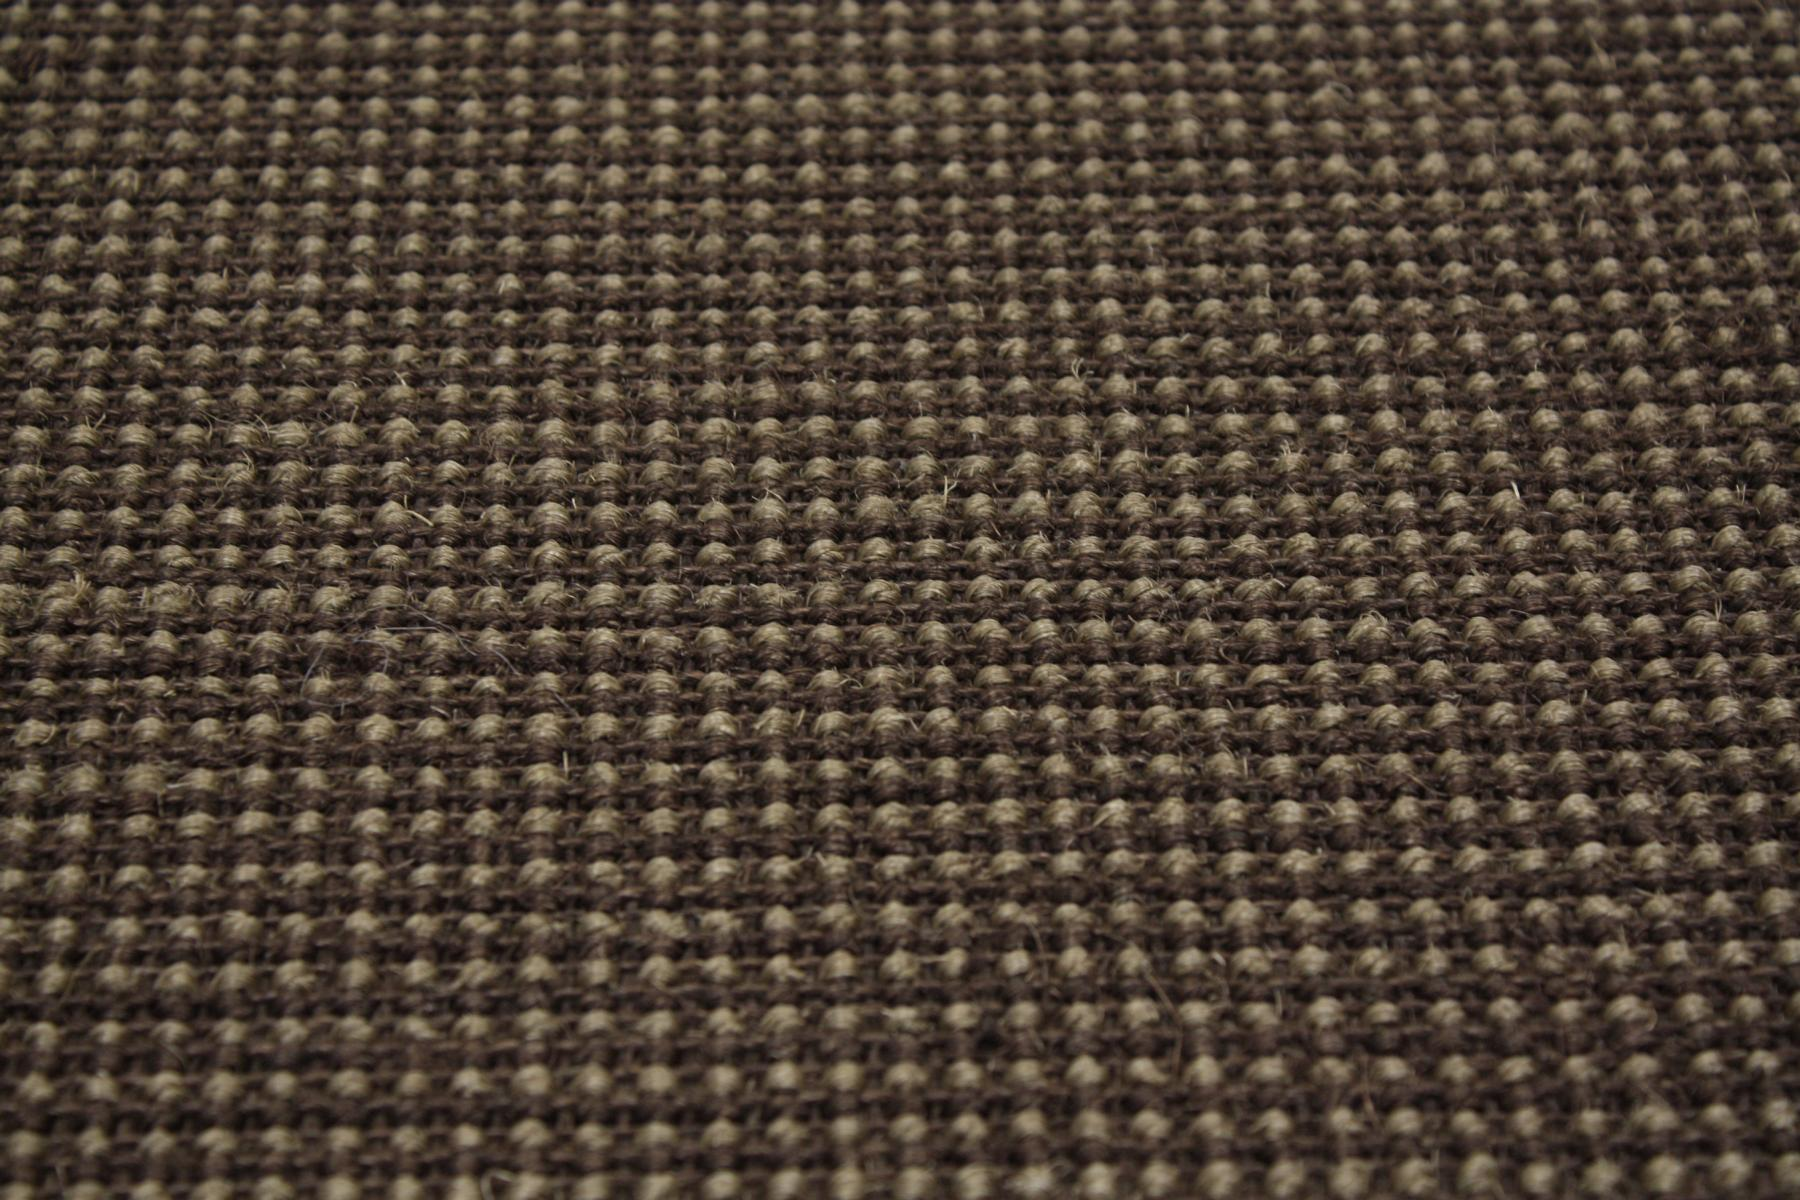 sisal tapis surfil motifs caf 400x400cm 100 sisal marron transport ebay. Black Bedroom Furniture Sets. Home Design Ideas